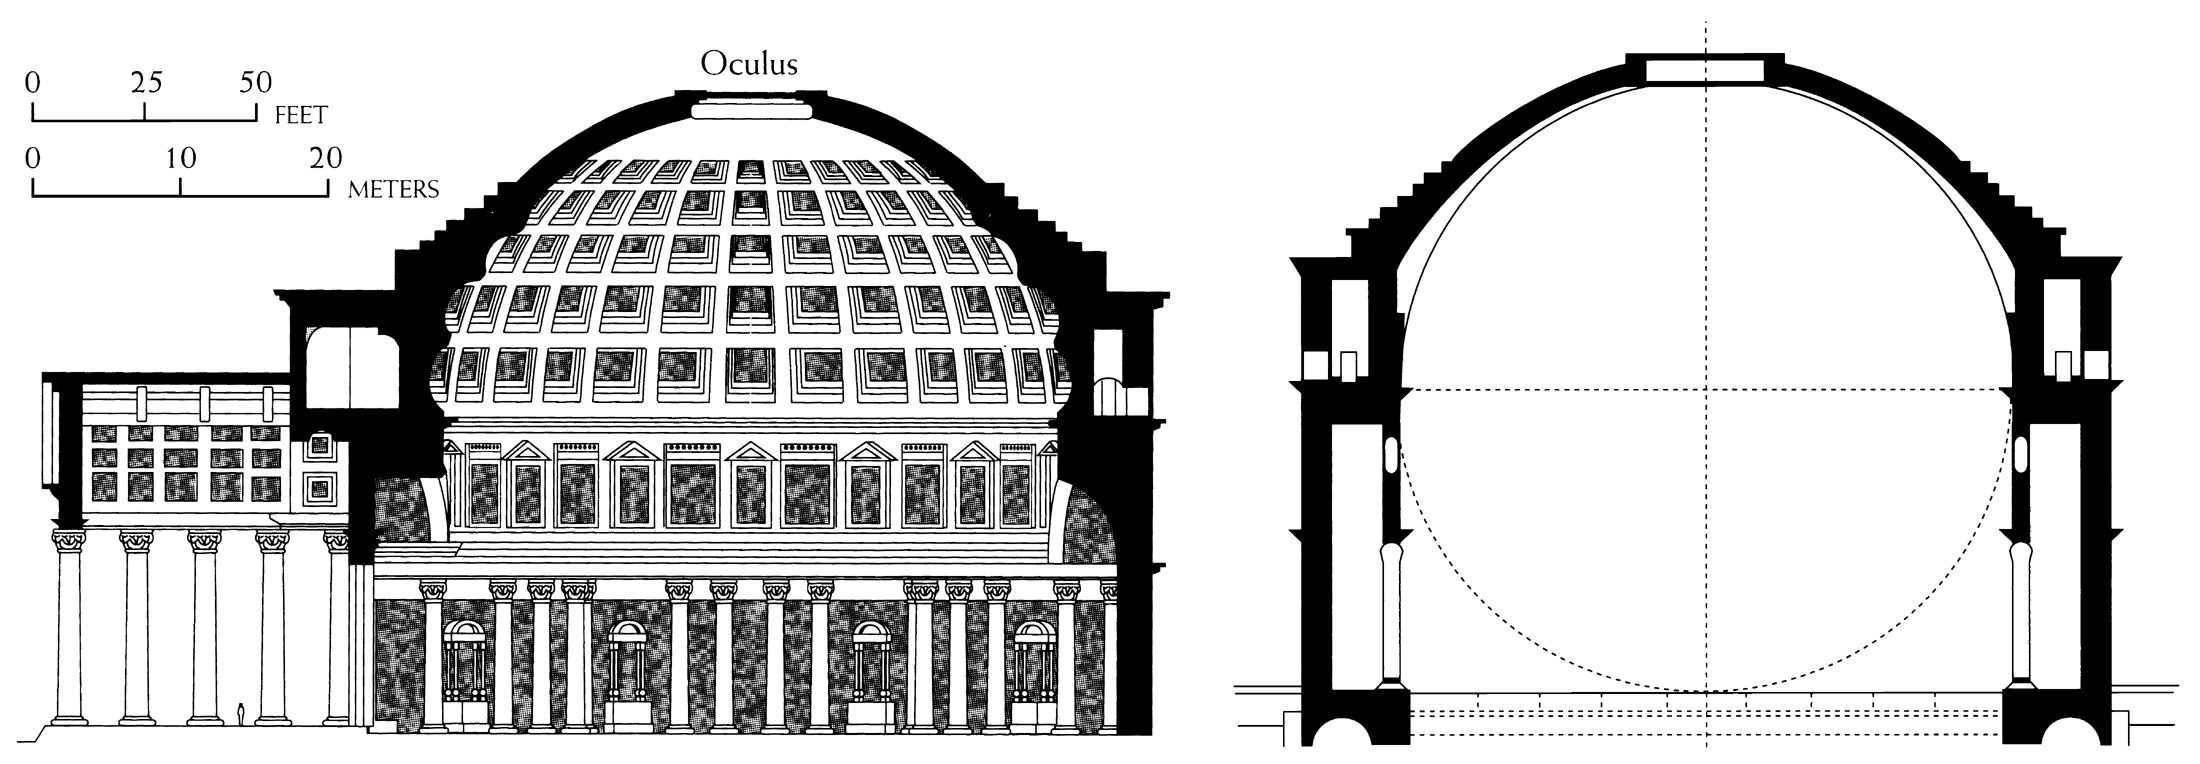 how to draw a cross section view